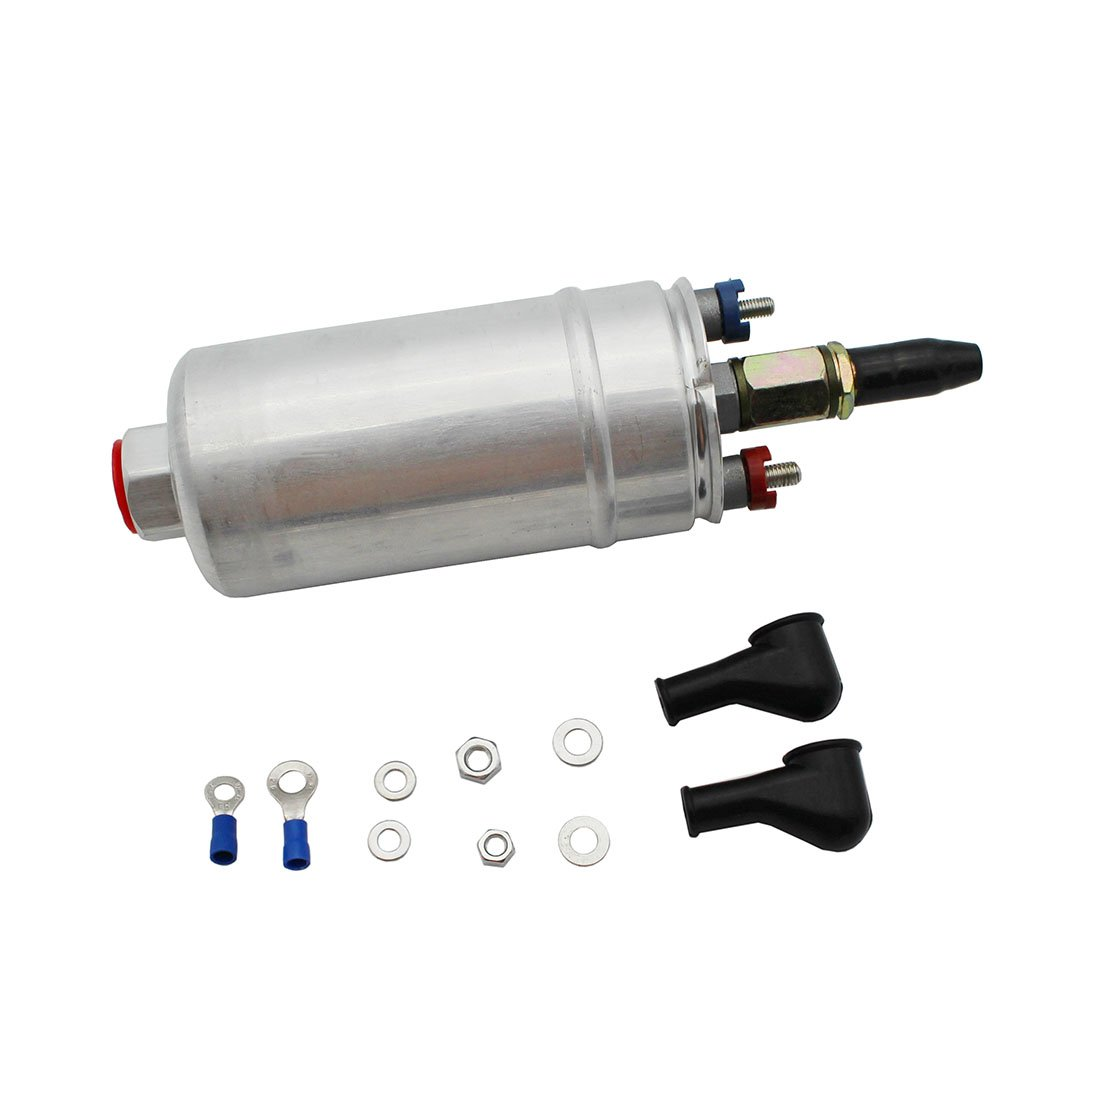 GoodQbuy® Universal External Inline High Performance 300 LPH Inline Fuel Injection Pump for Racing Cars Replacing BOSCH 0580254044 0580 254 044 GoodQbuy® AT-300L